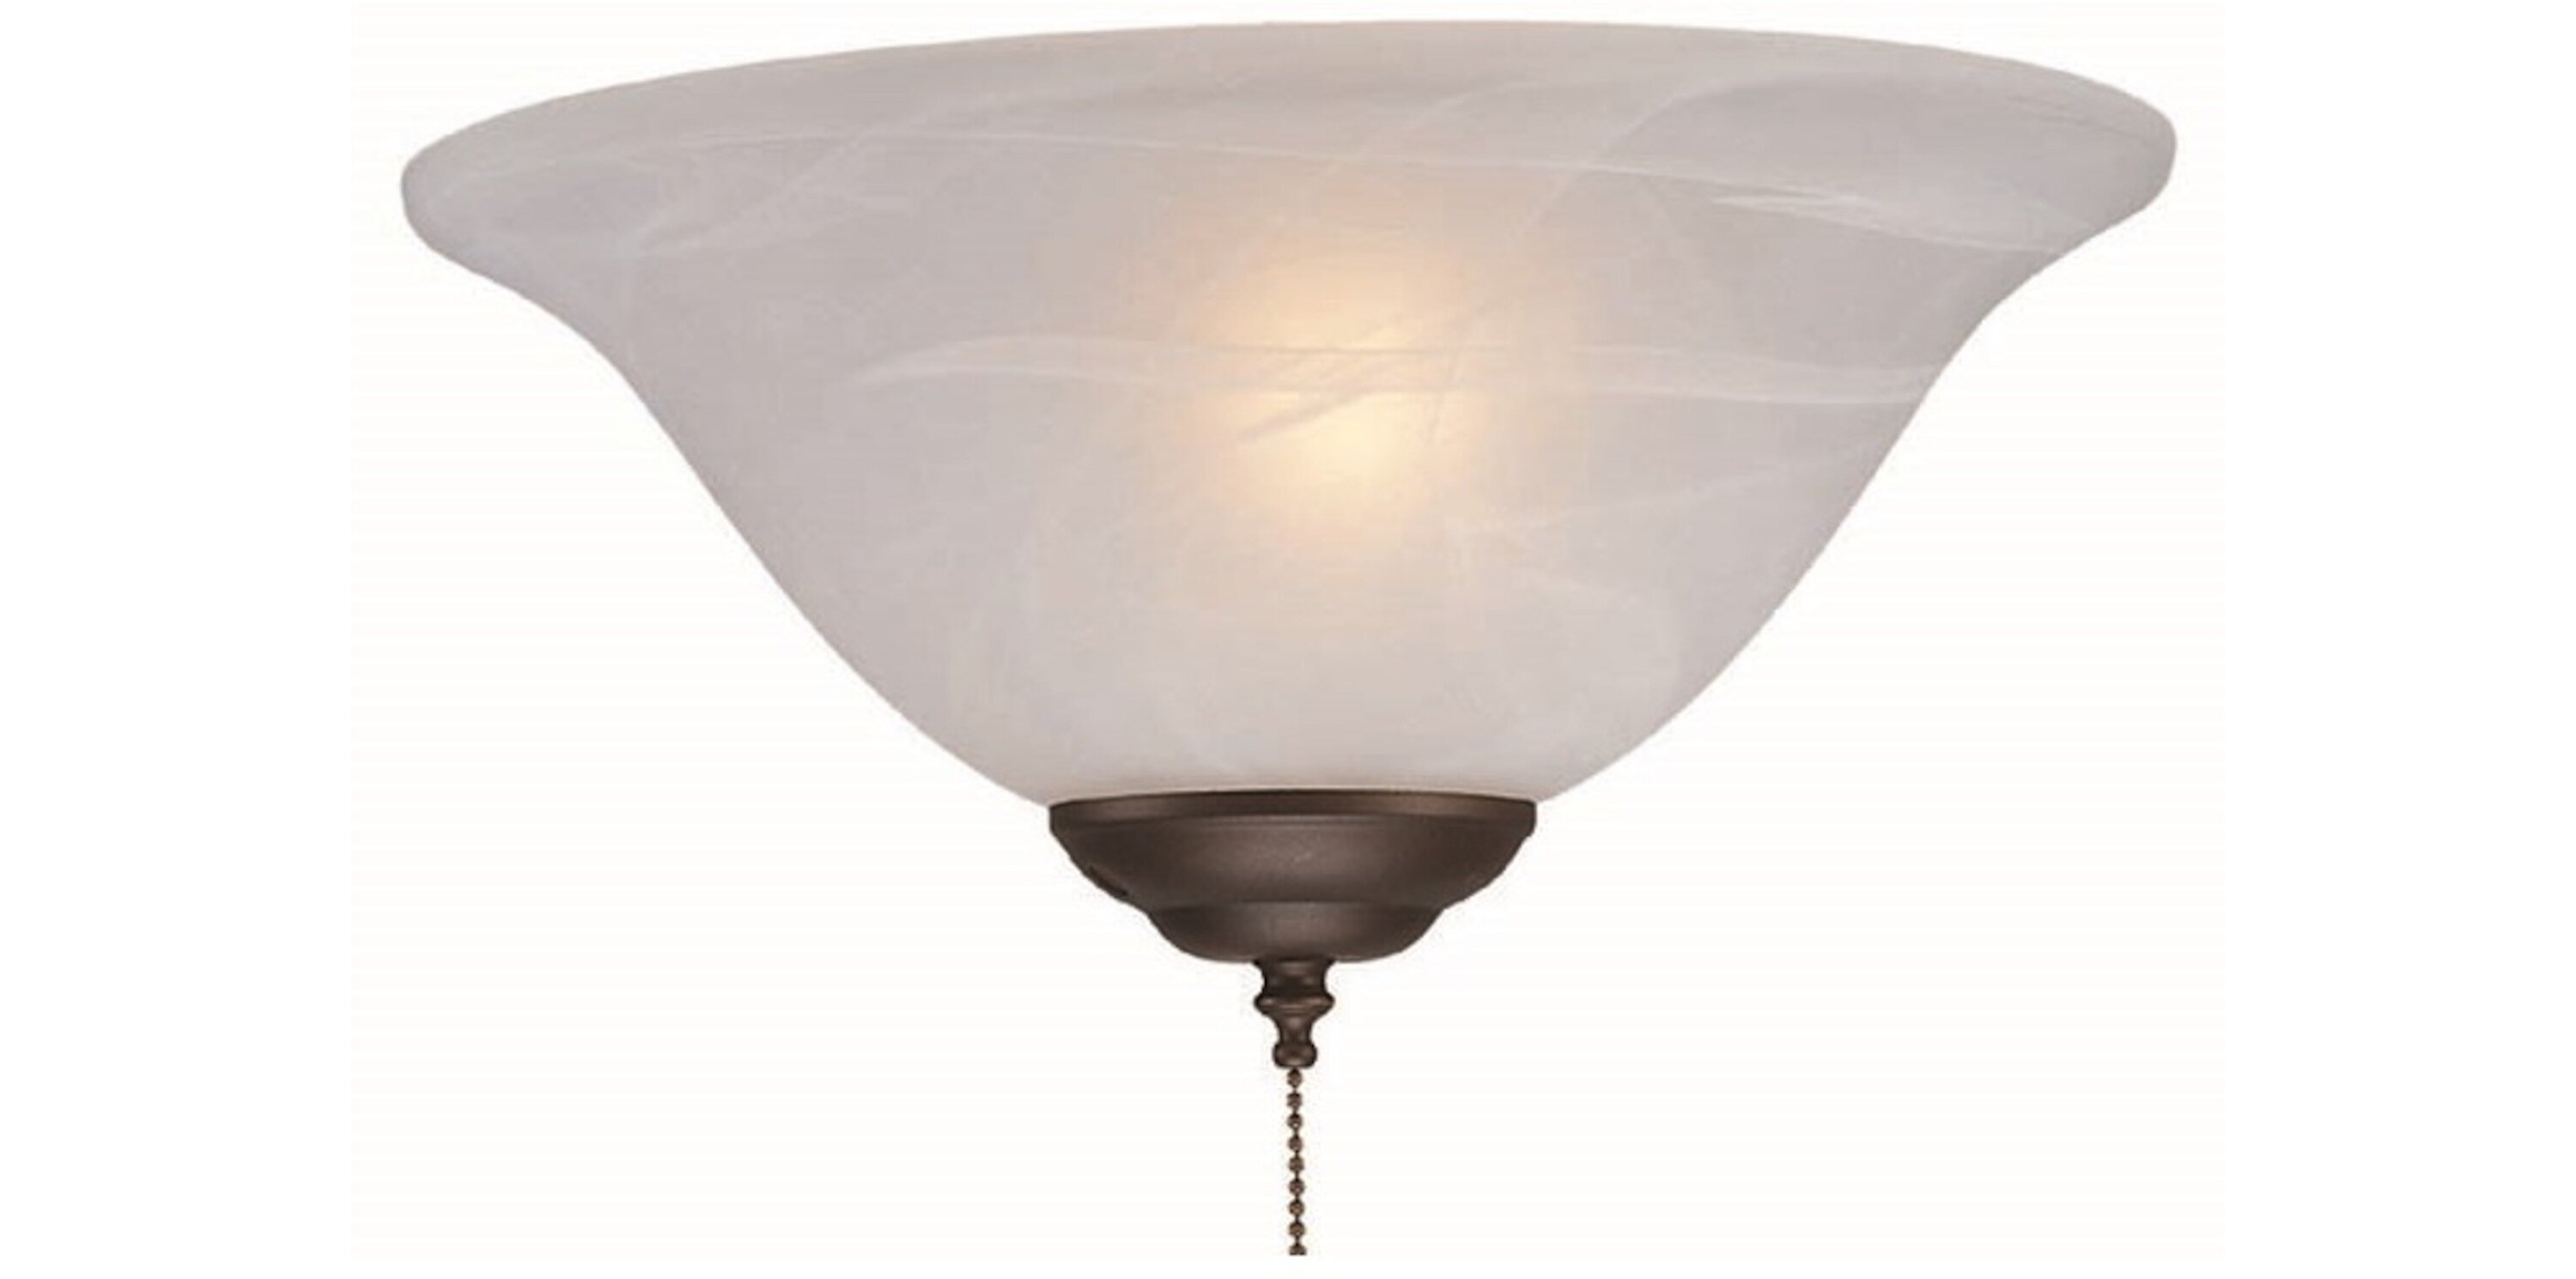 Royal Pacific 3 Light Bowl Ceiling Fan Light Kit & Reviews